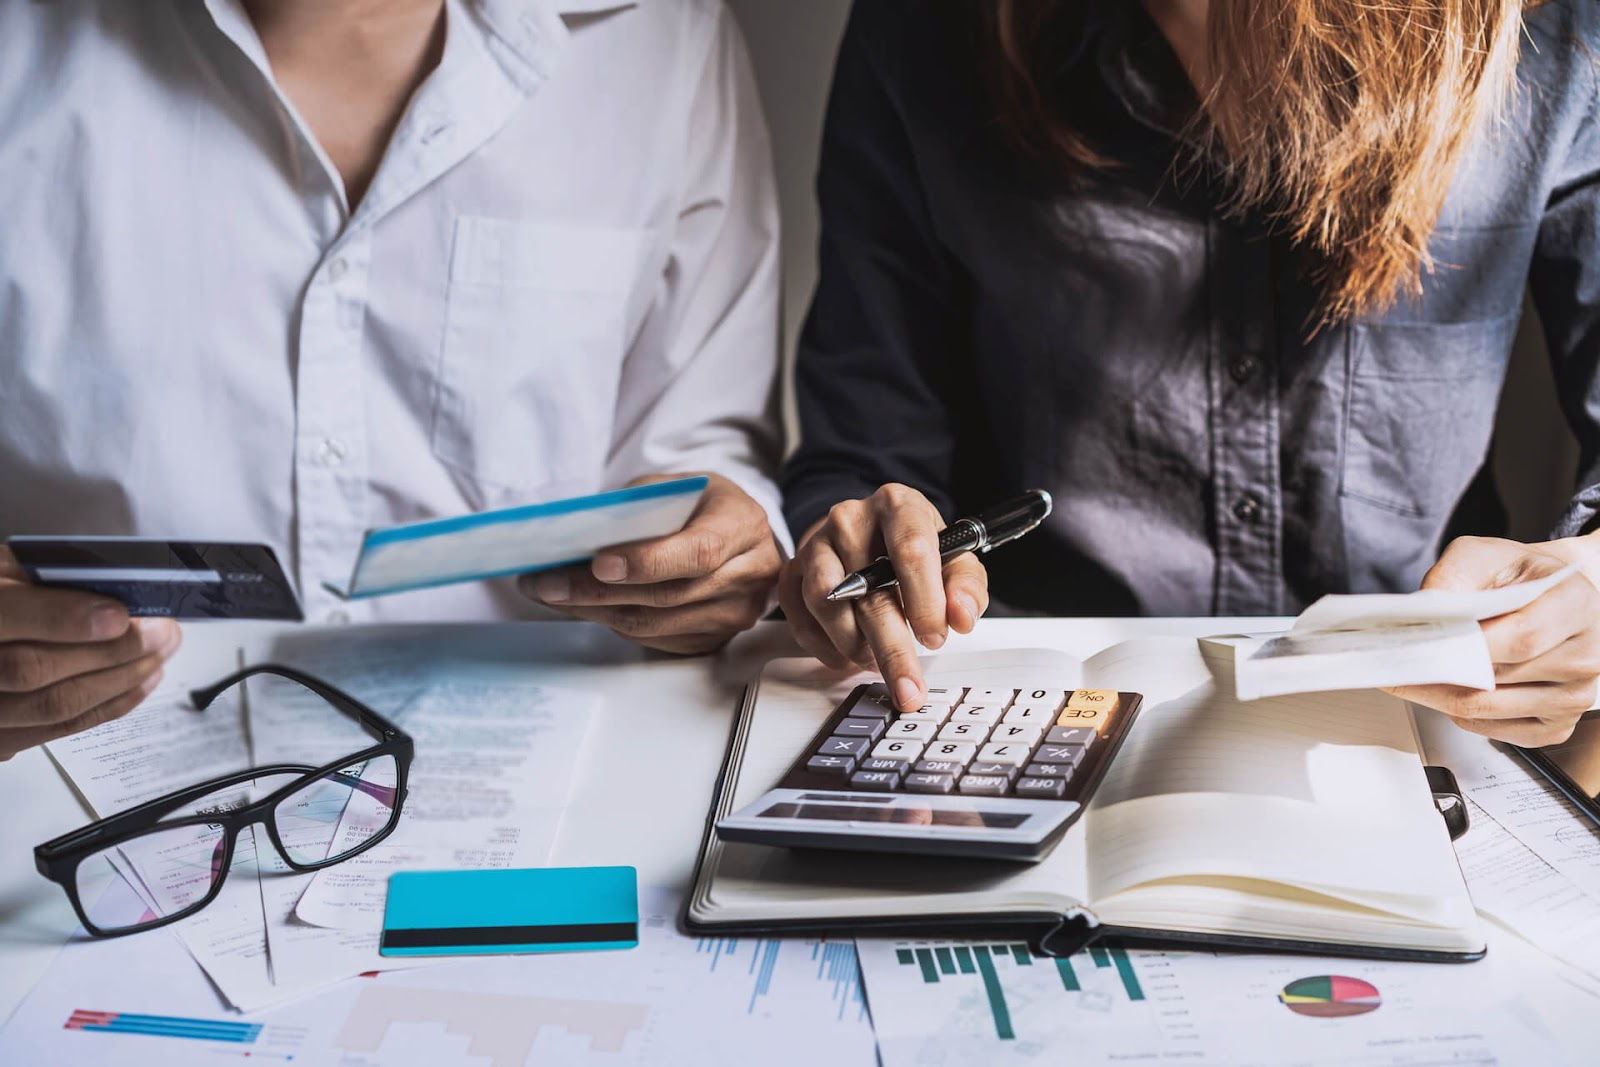 Man and woman calculating costs together